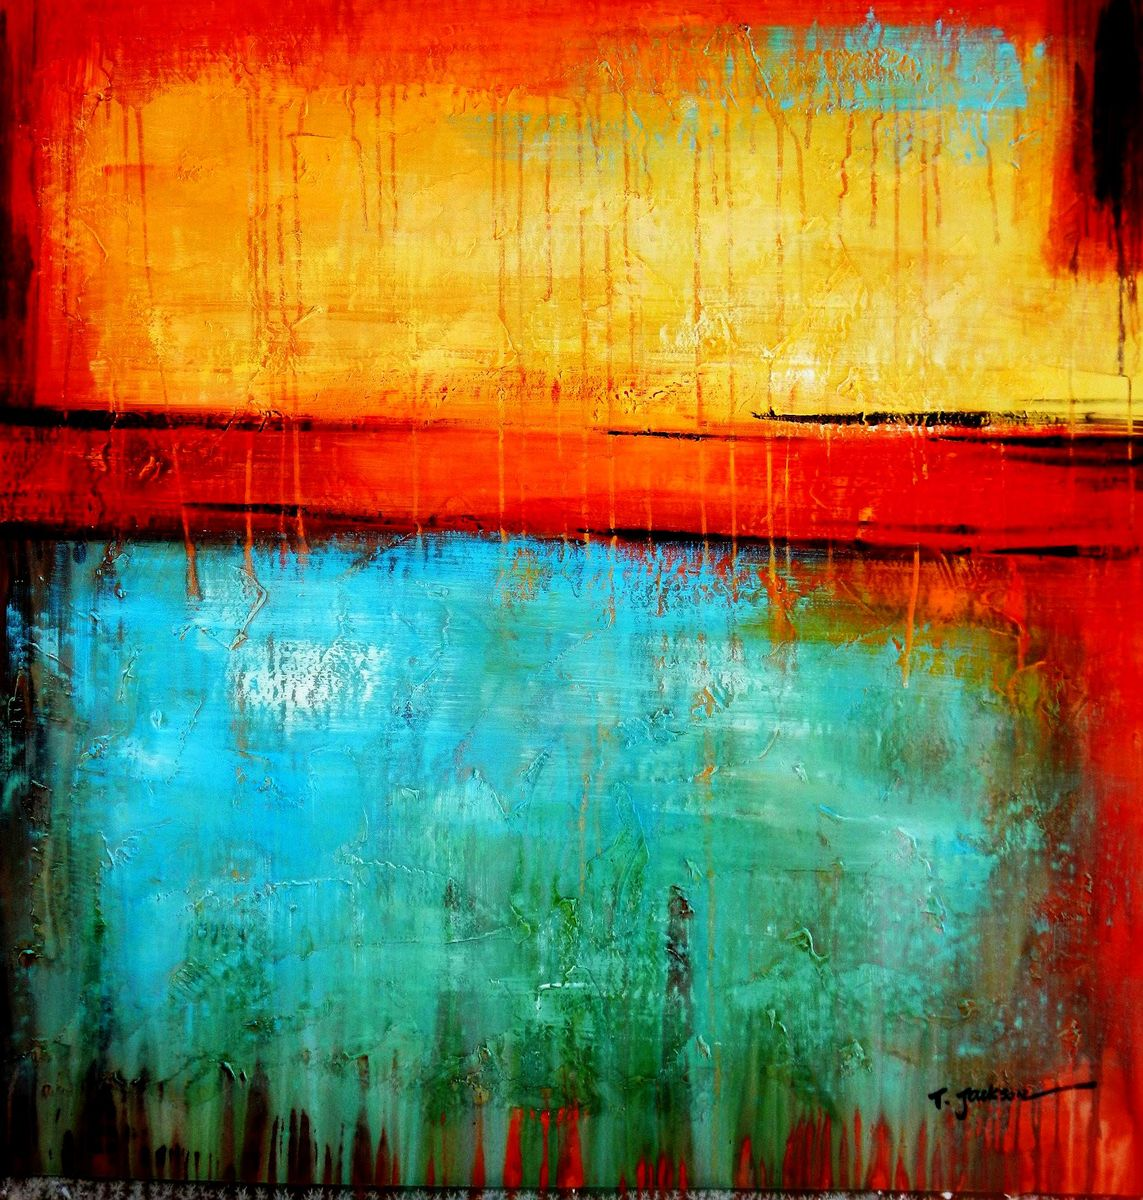 Abstract - Mirage in Babylon h96156 90x90cm abstraktes Ölbild